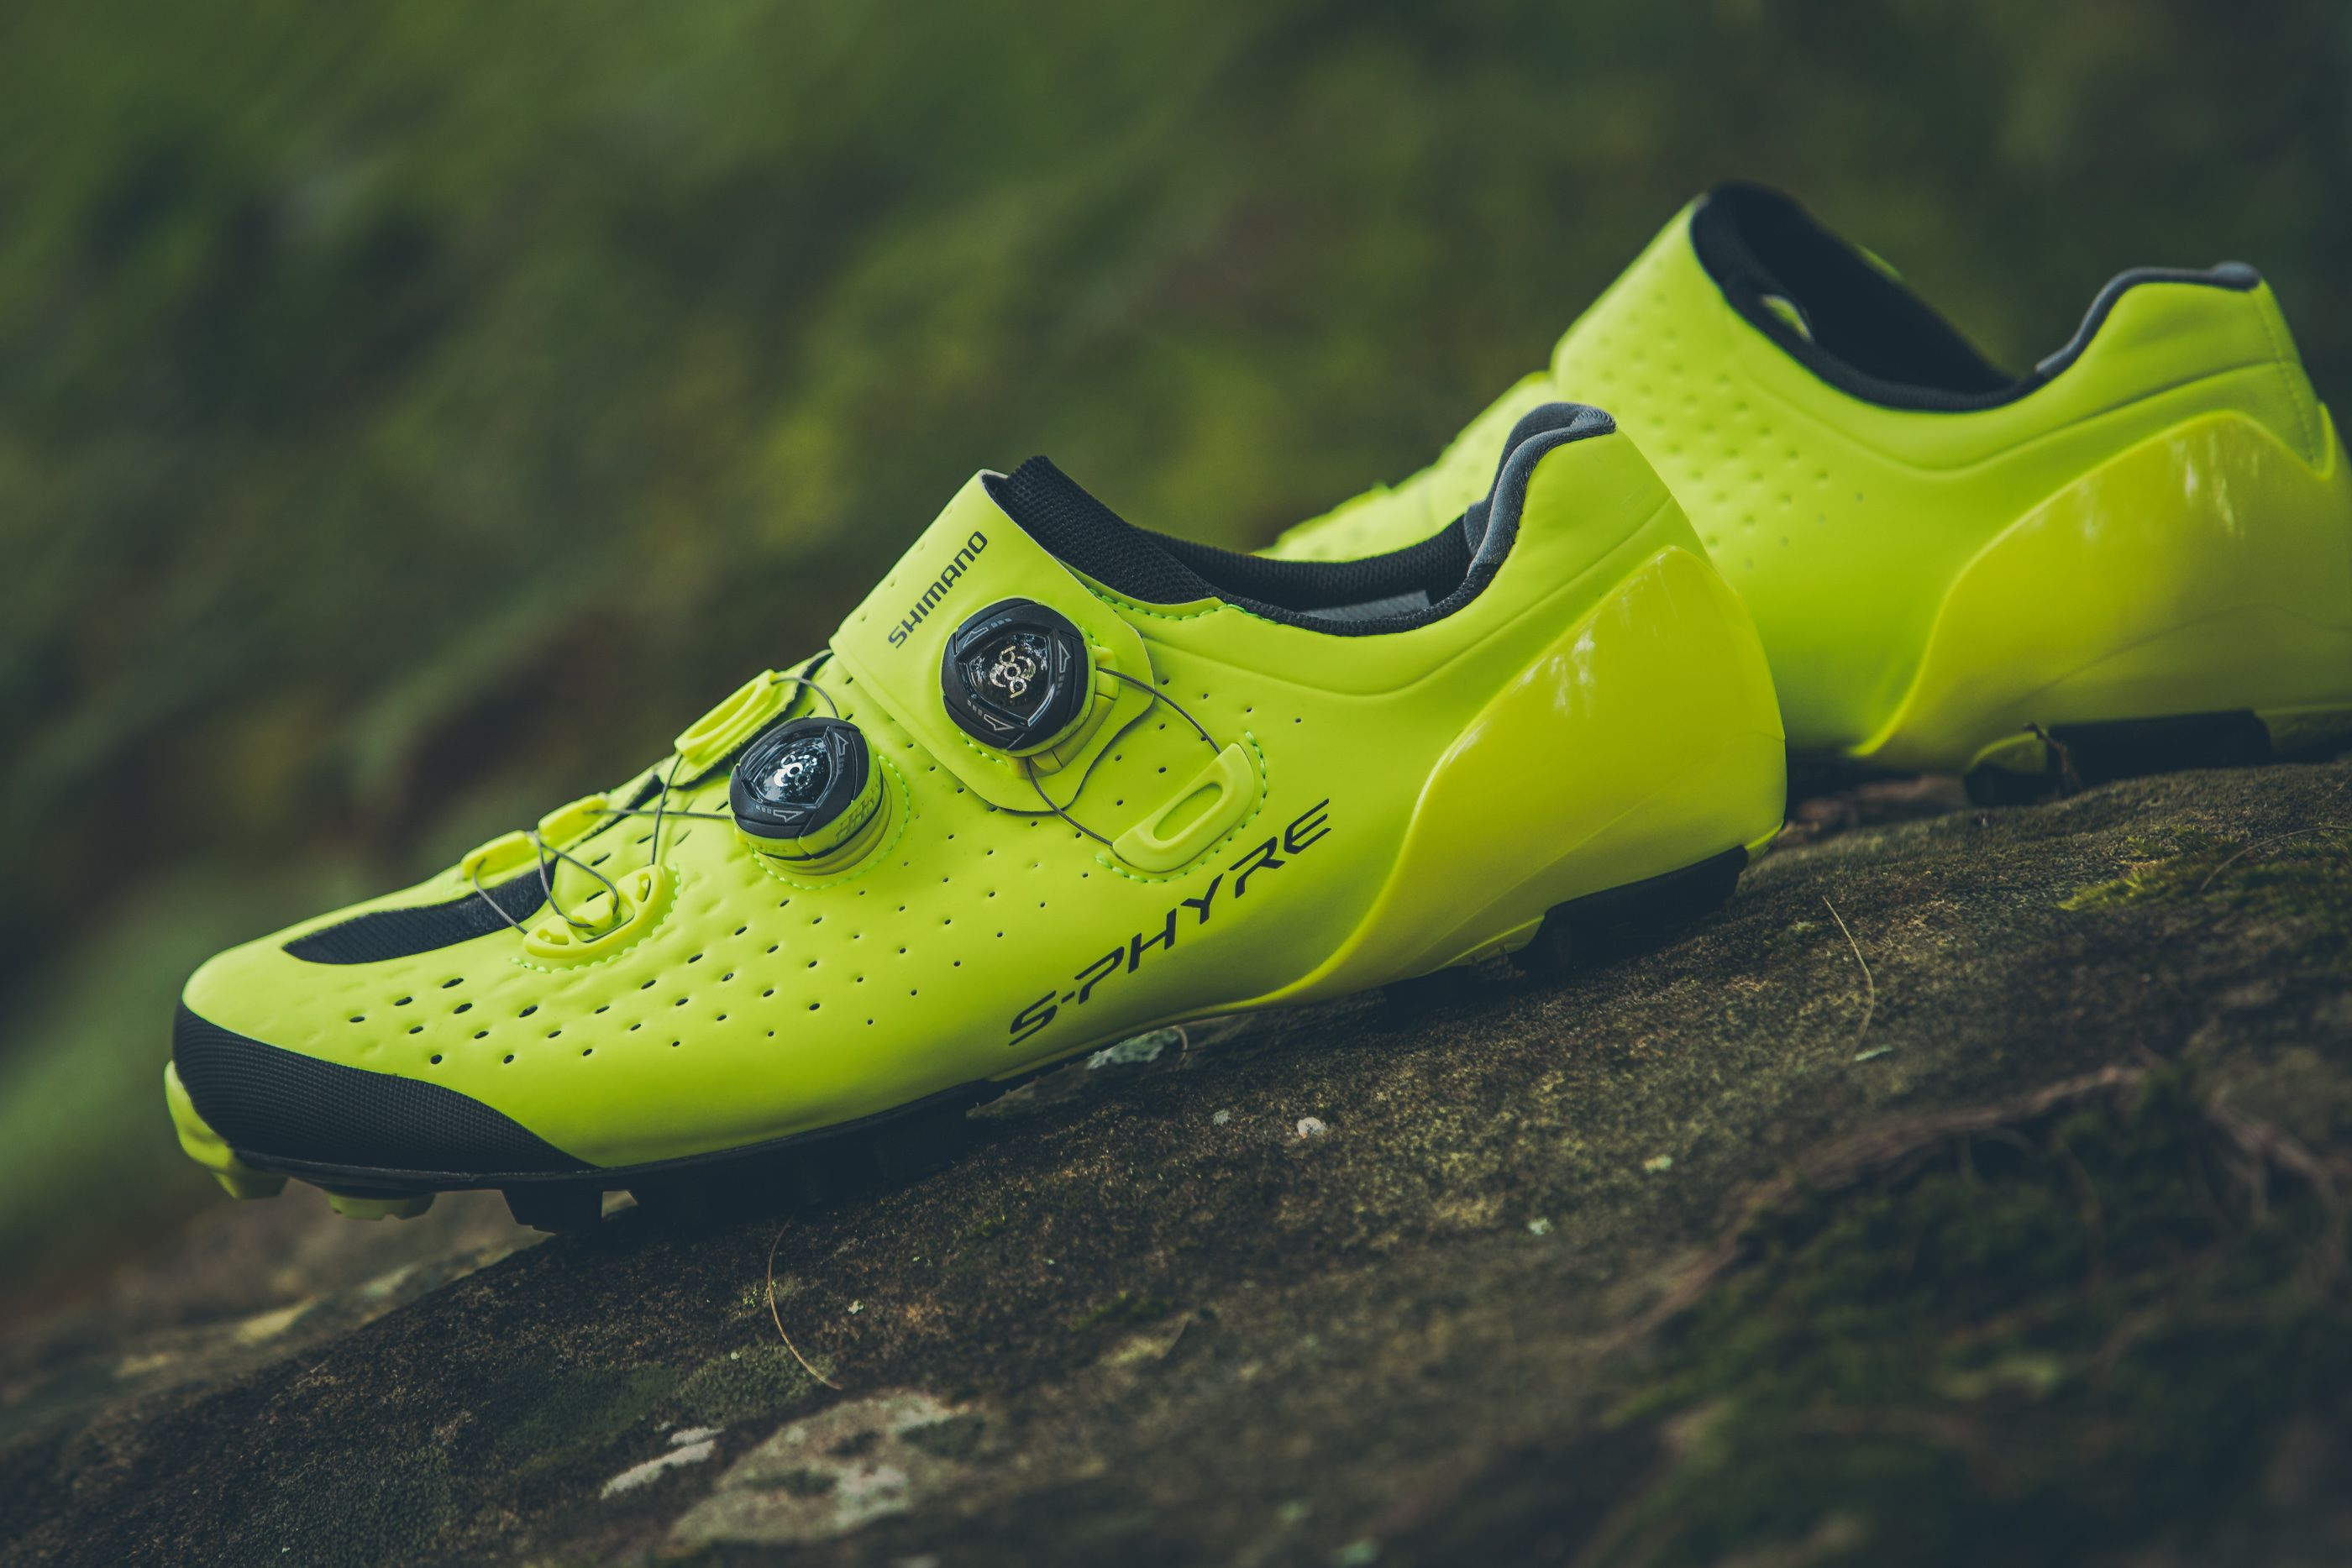 259bfbd1cdf Fresh Product: Shimano S-Phyre XC9 and XC7 Shoes – Flow Mountain Bike